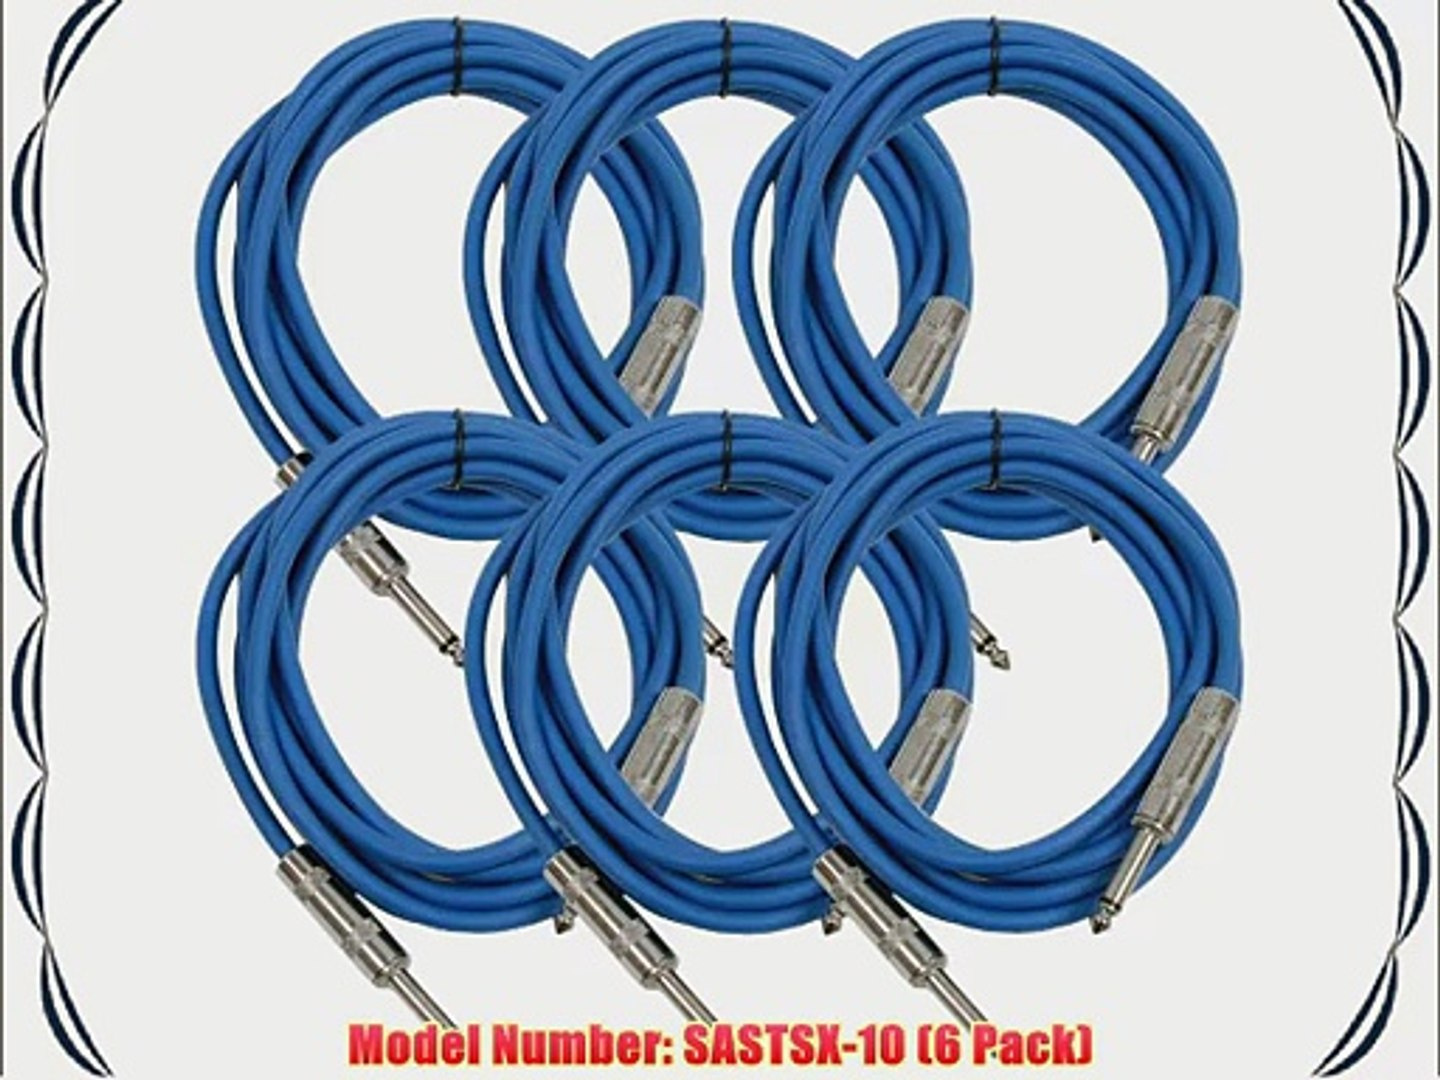 Seismic Audio SASTSX-10Blue-6PK 10-Feet TS 1/4-Inch Guitar Instrument or Patch Cable Blue